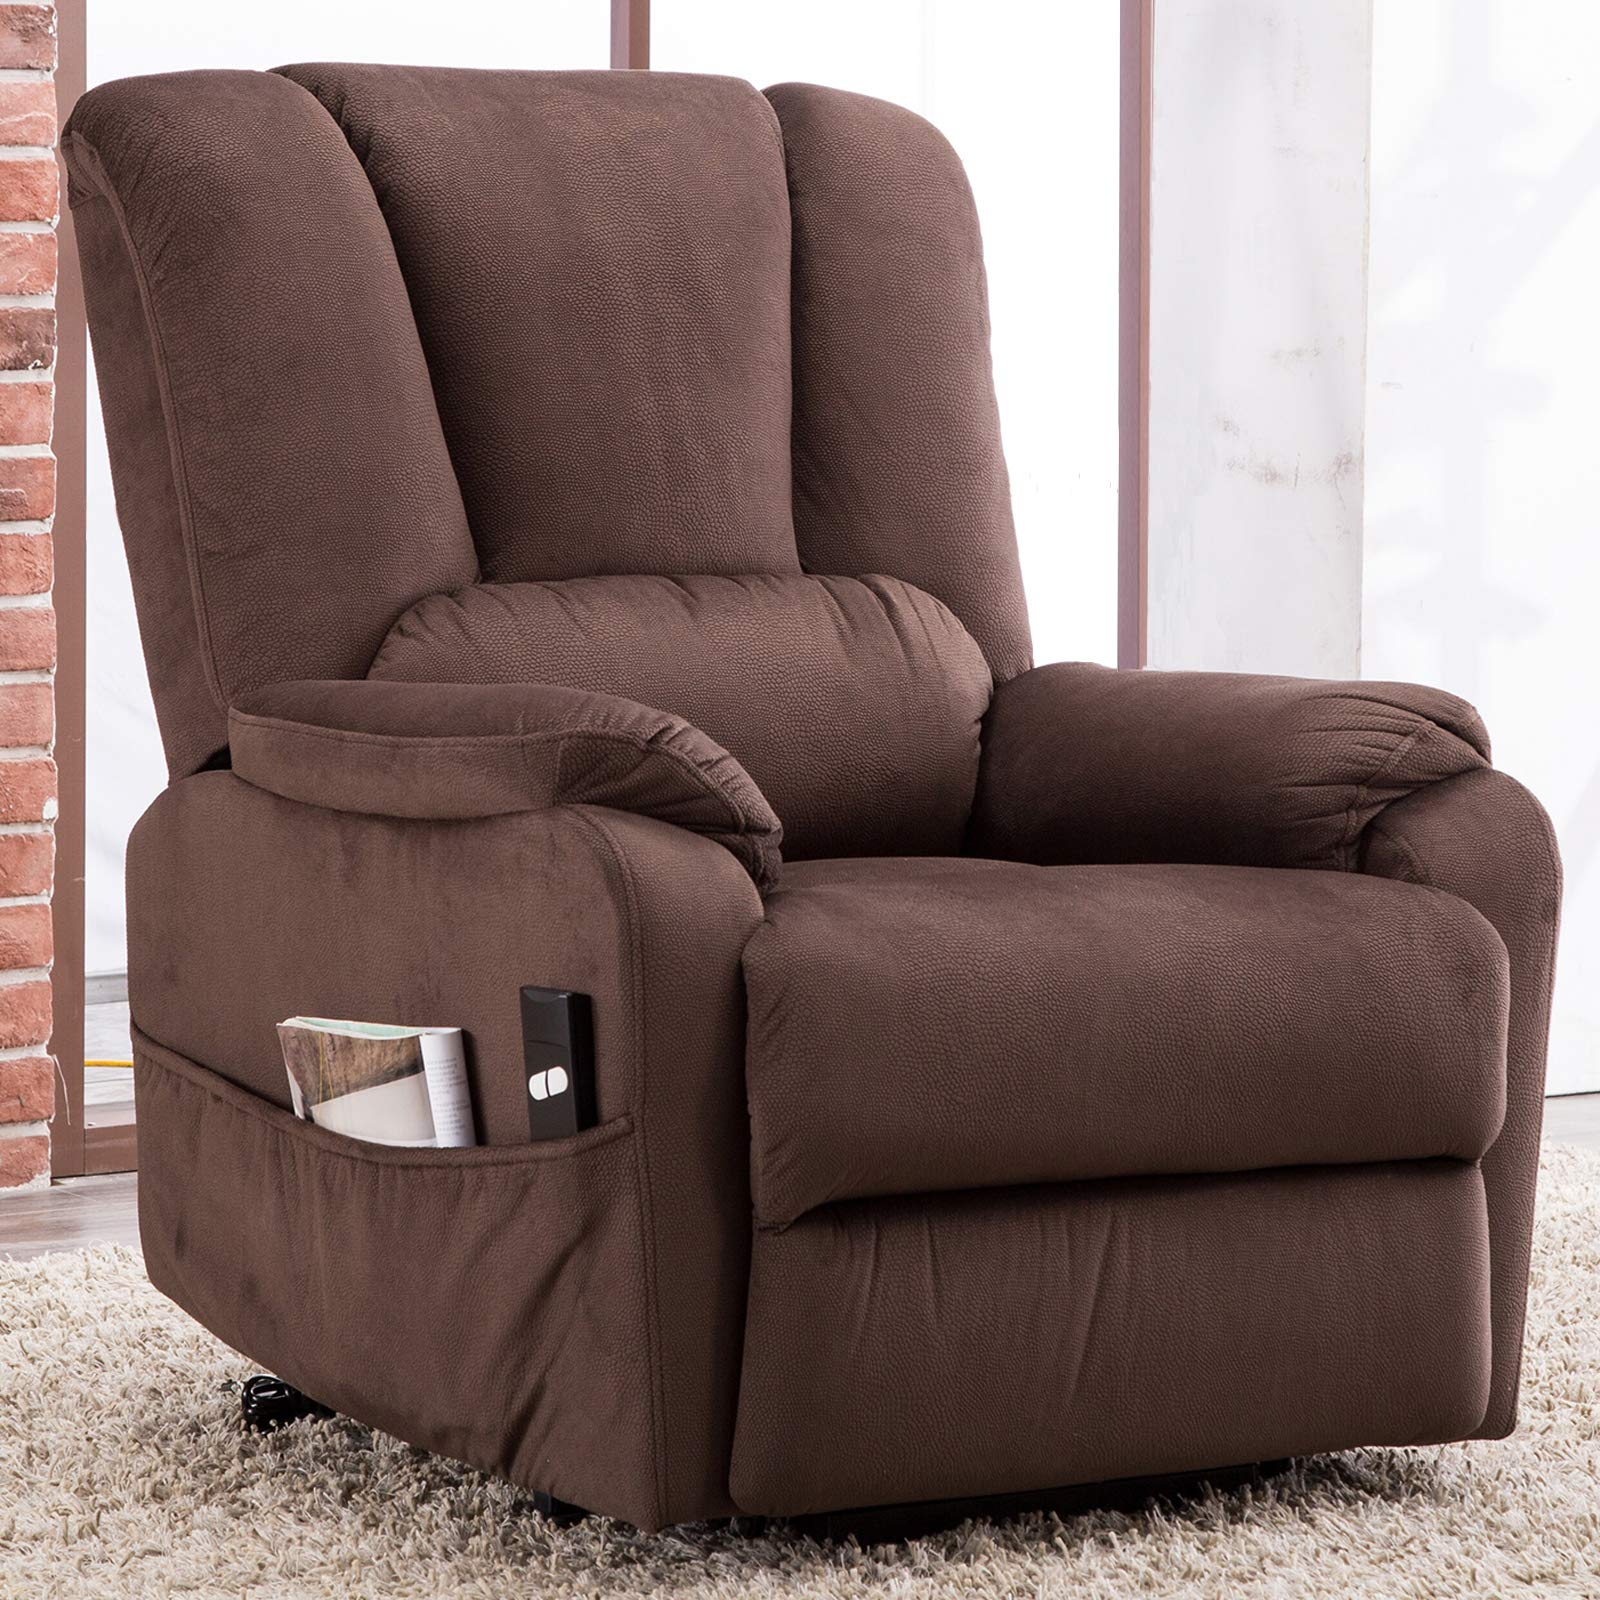 CANMOV Power Lift Recliner Chair for Elderly- Heavy Duty and Safety Motion Reclining Mechanism-Antiskid Fabric Sofa Living Room Chair with Overstuffed Design, Chocolate by CANMOV